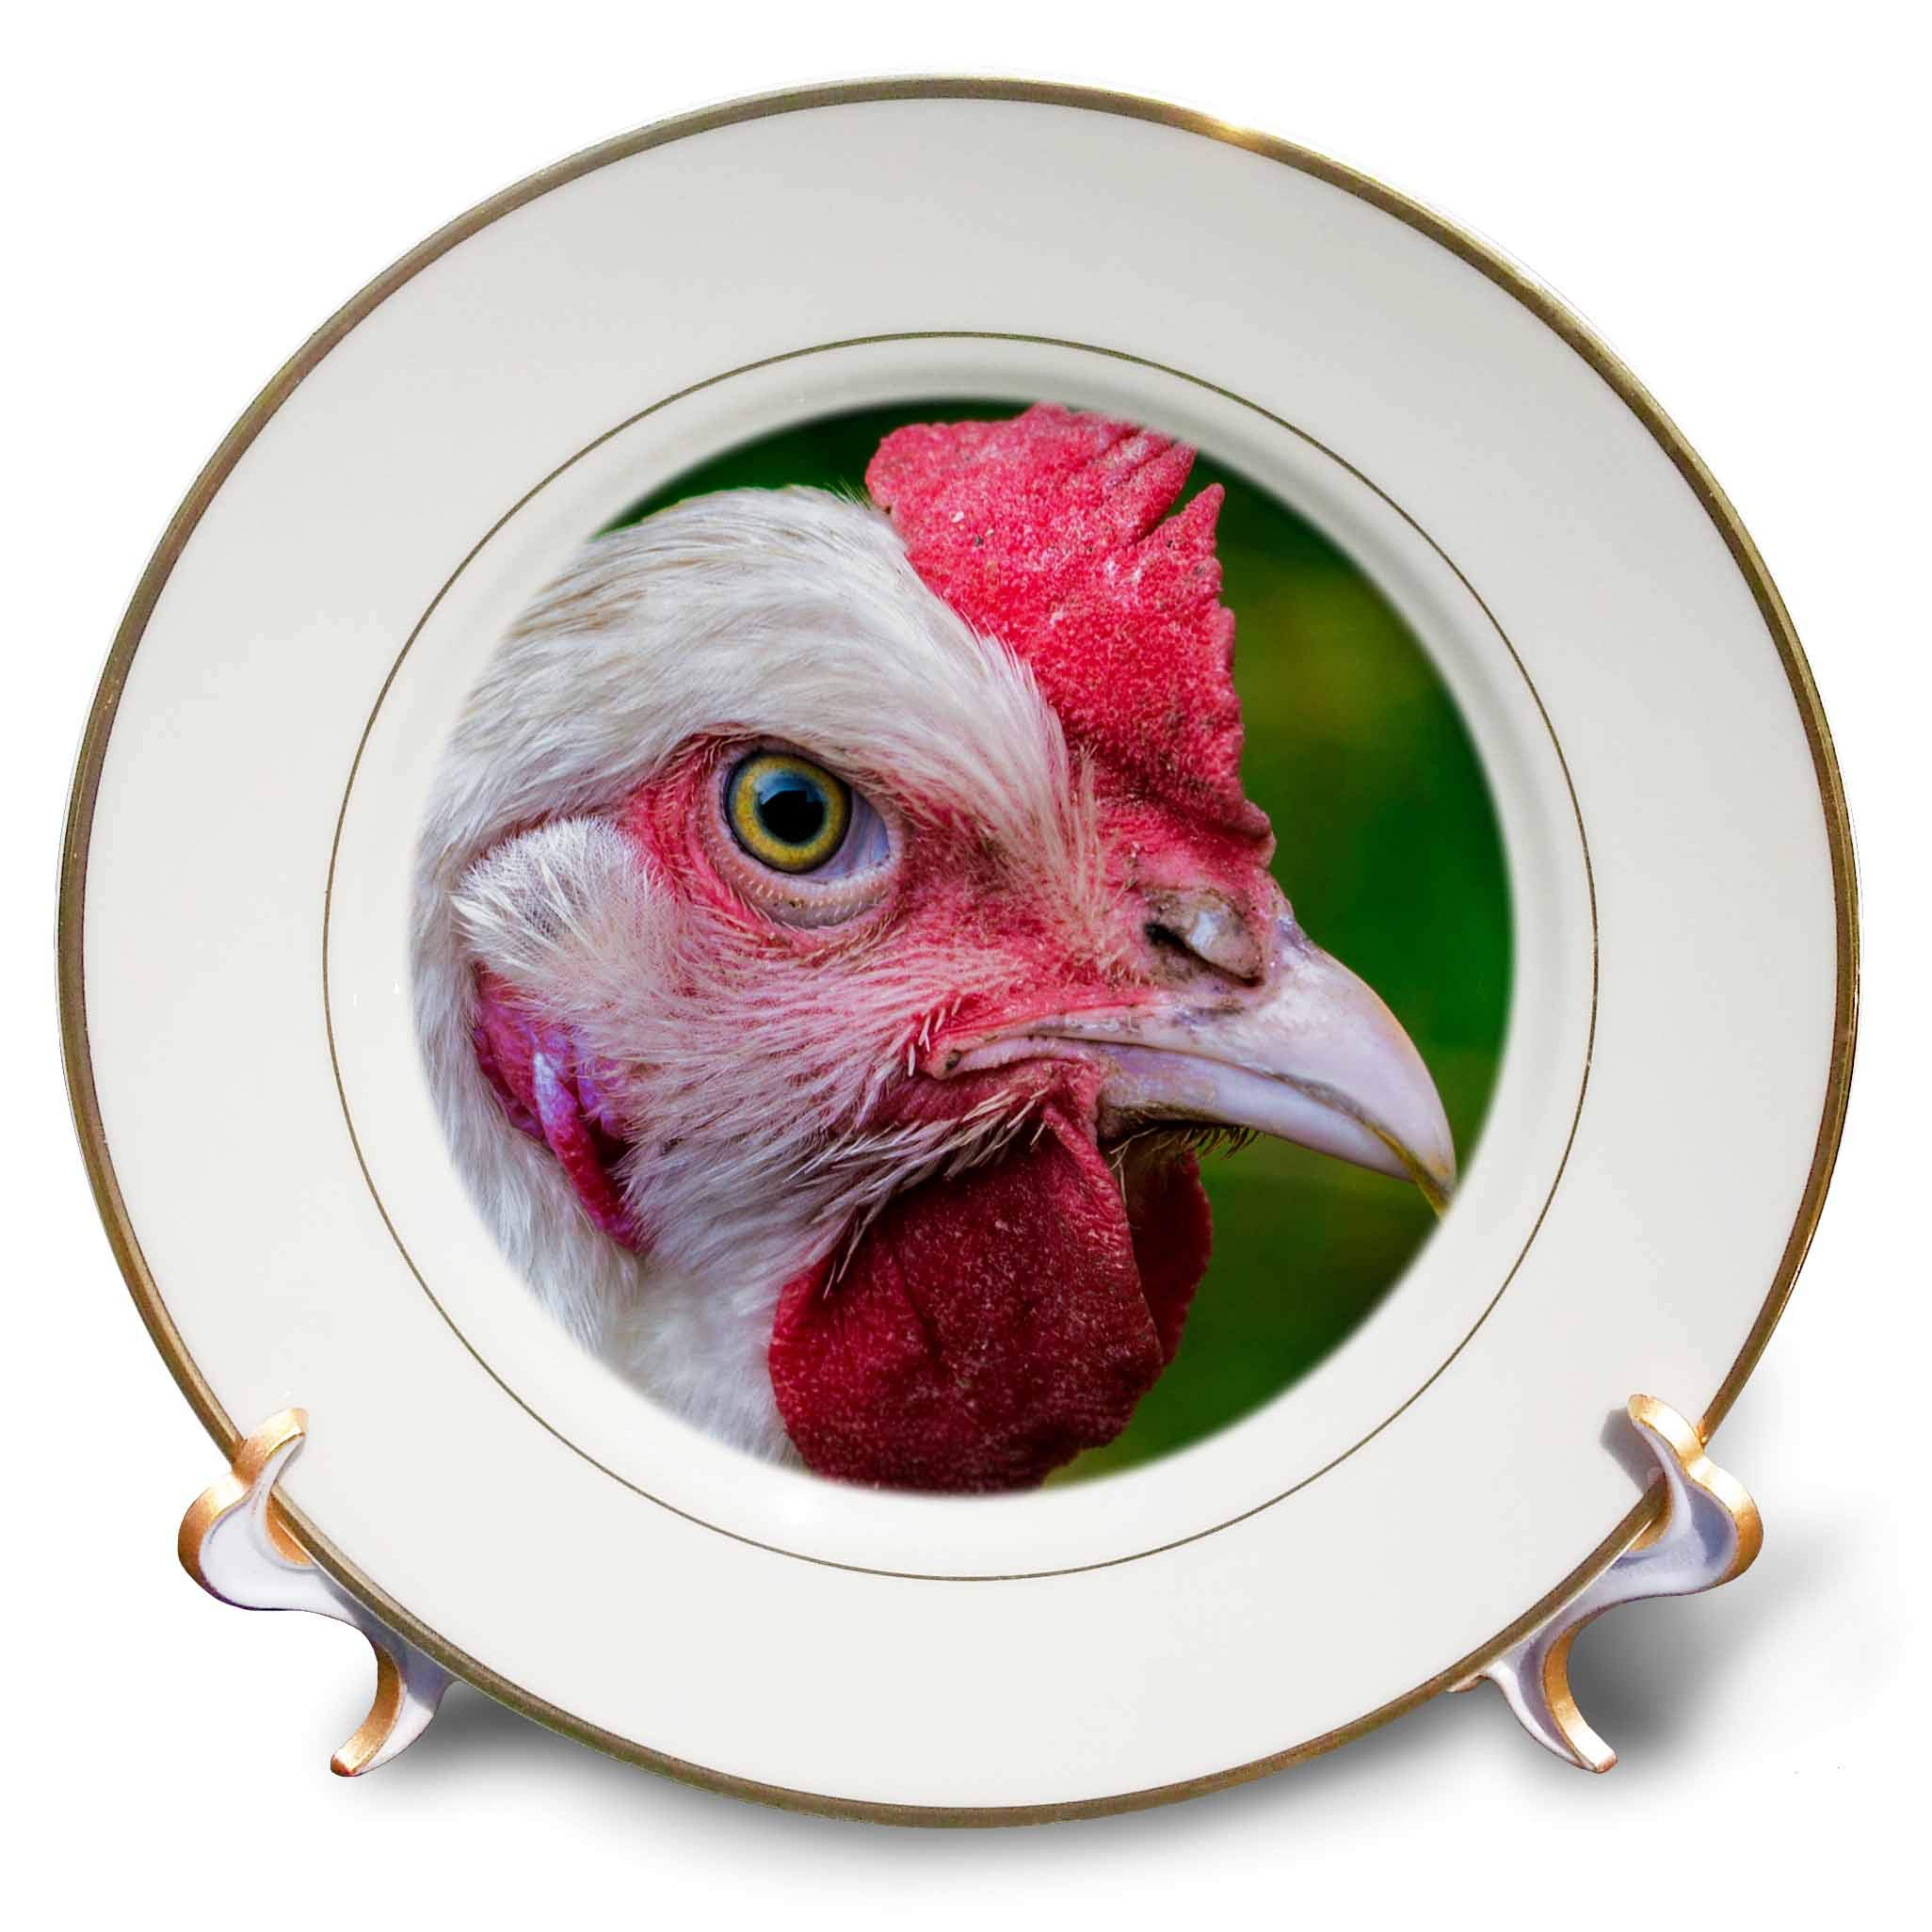 3dRose Sven Herkenrath Animal - Close Up View of Chicken Bird Farm Animal Photography - 8 inch Porcelain Plate (cp_294235_1)